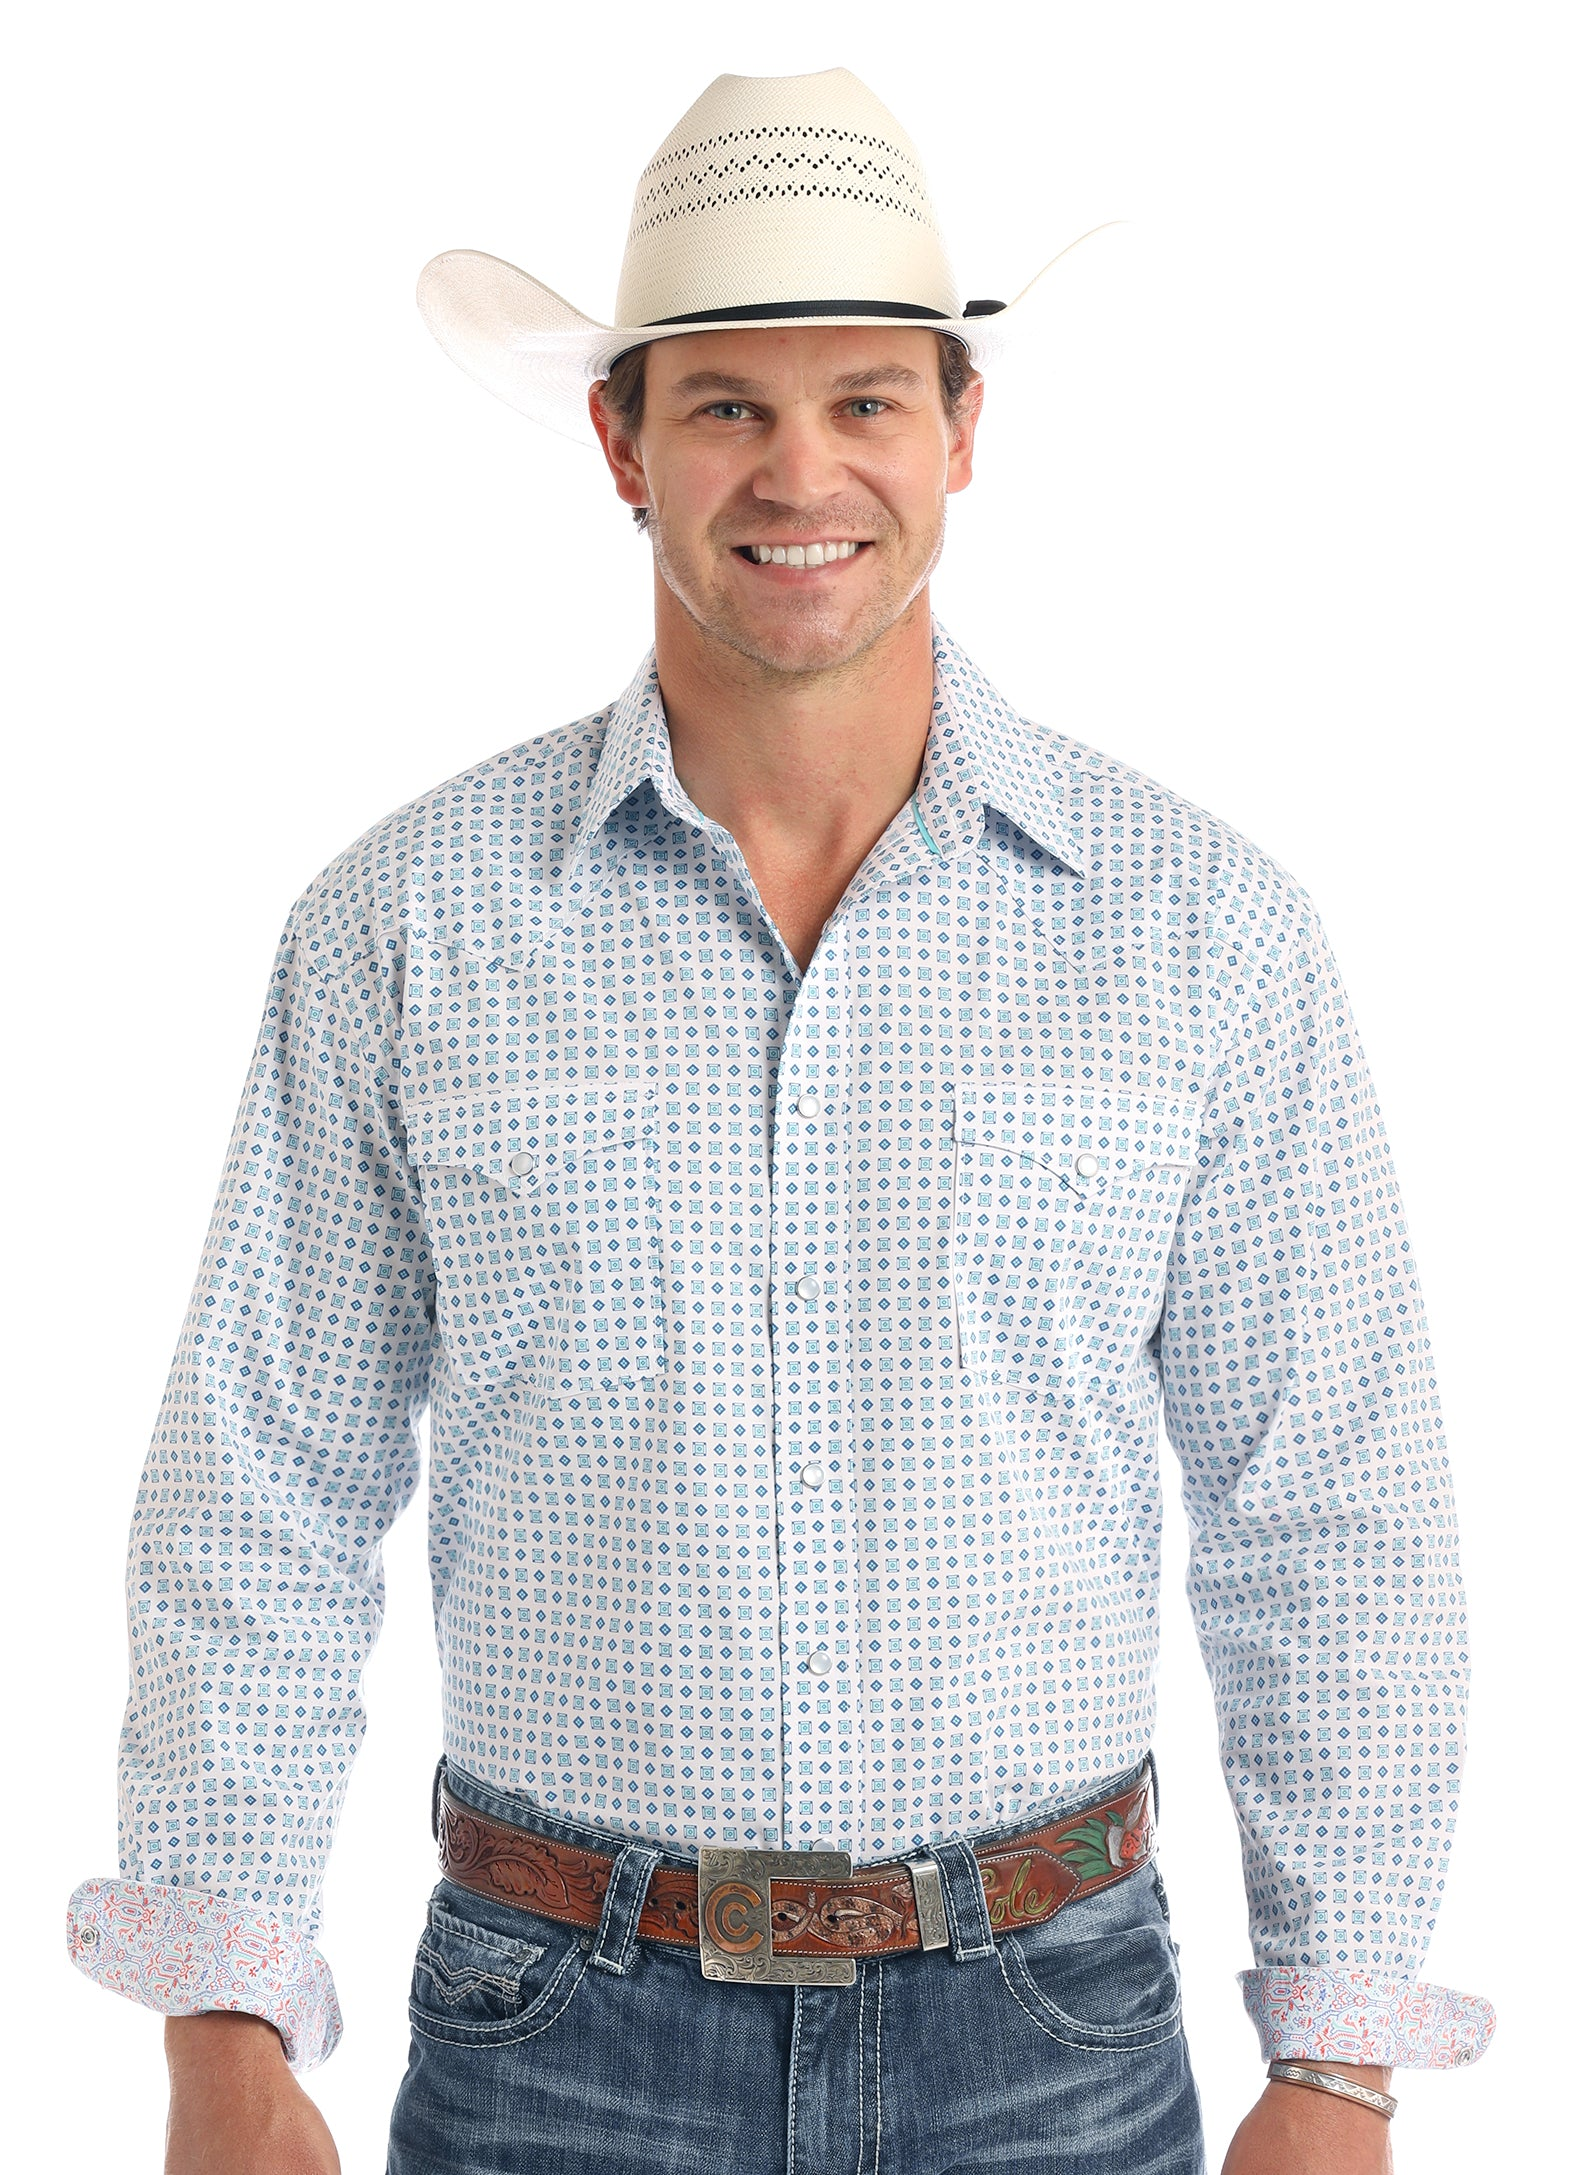 Panhandle Rough Stock Blue Dot Men's Snap Shirt